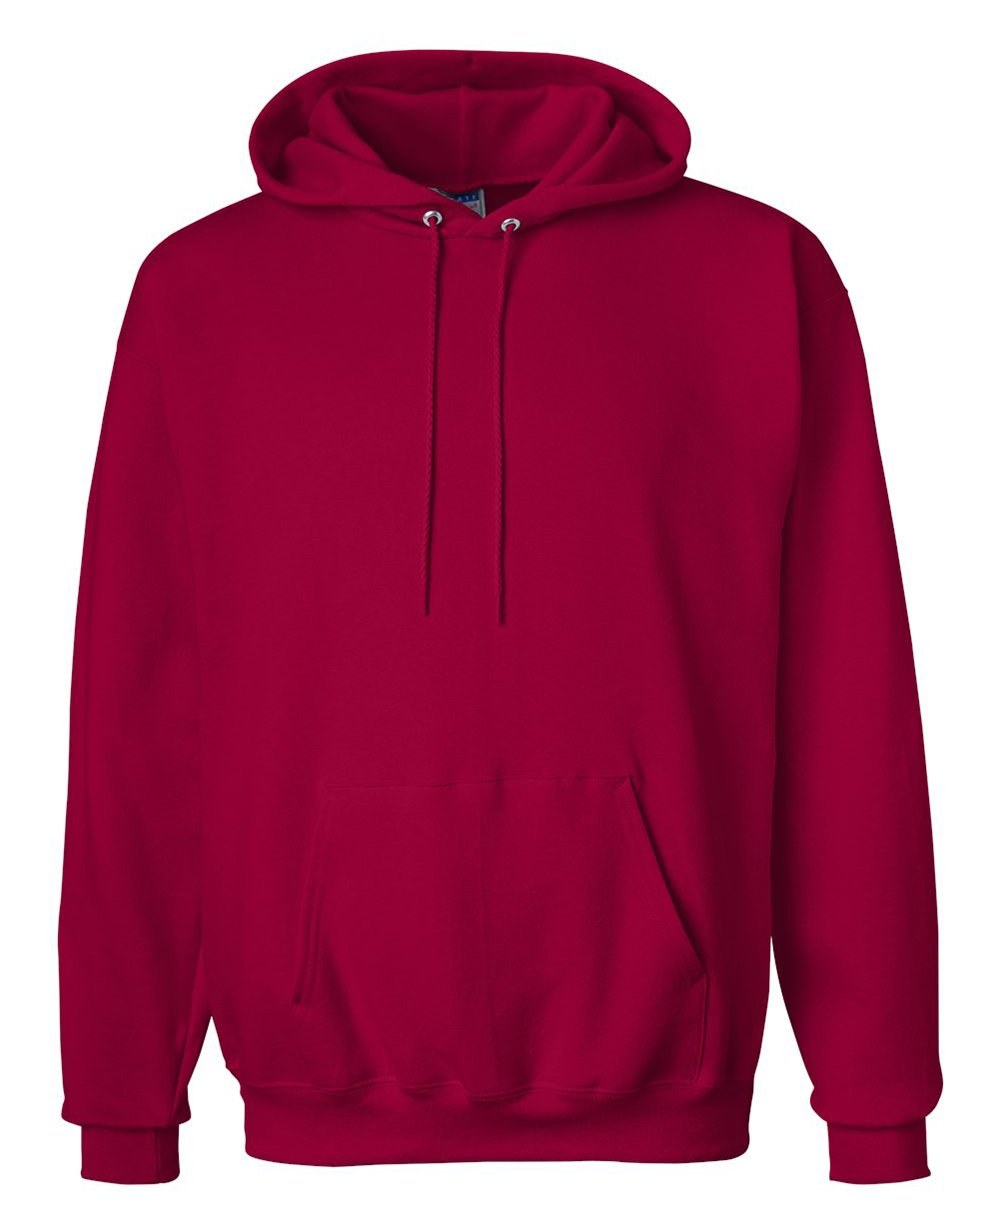 Pullover Hoodies in Deep Red